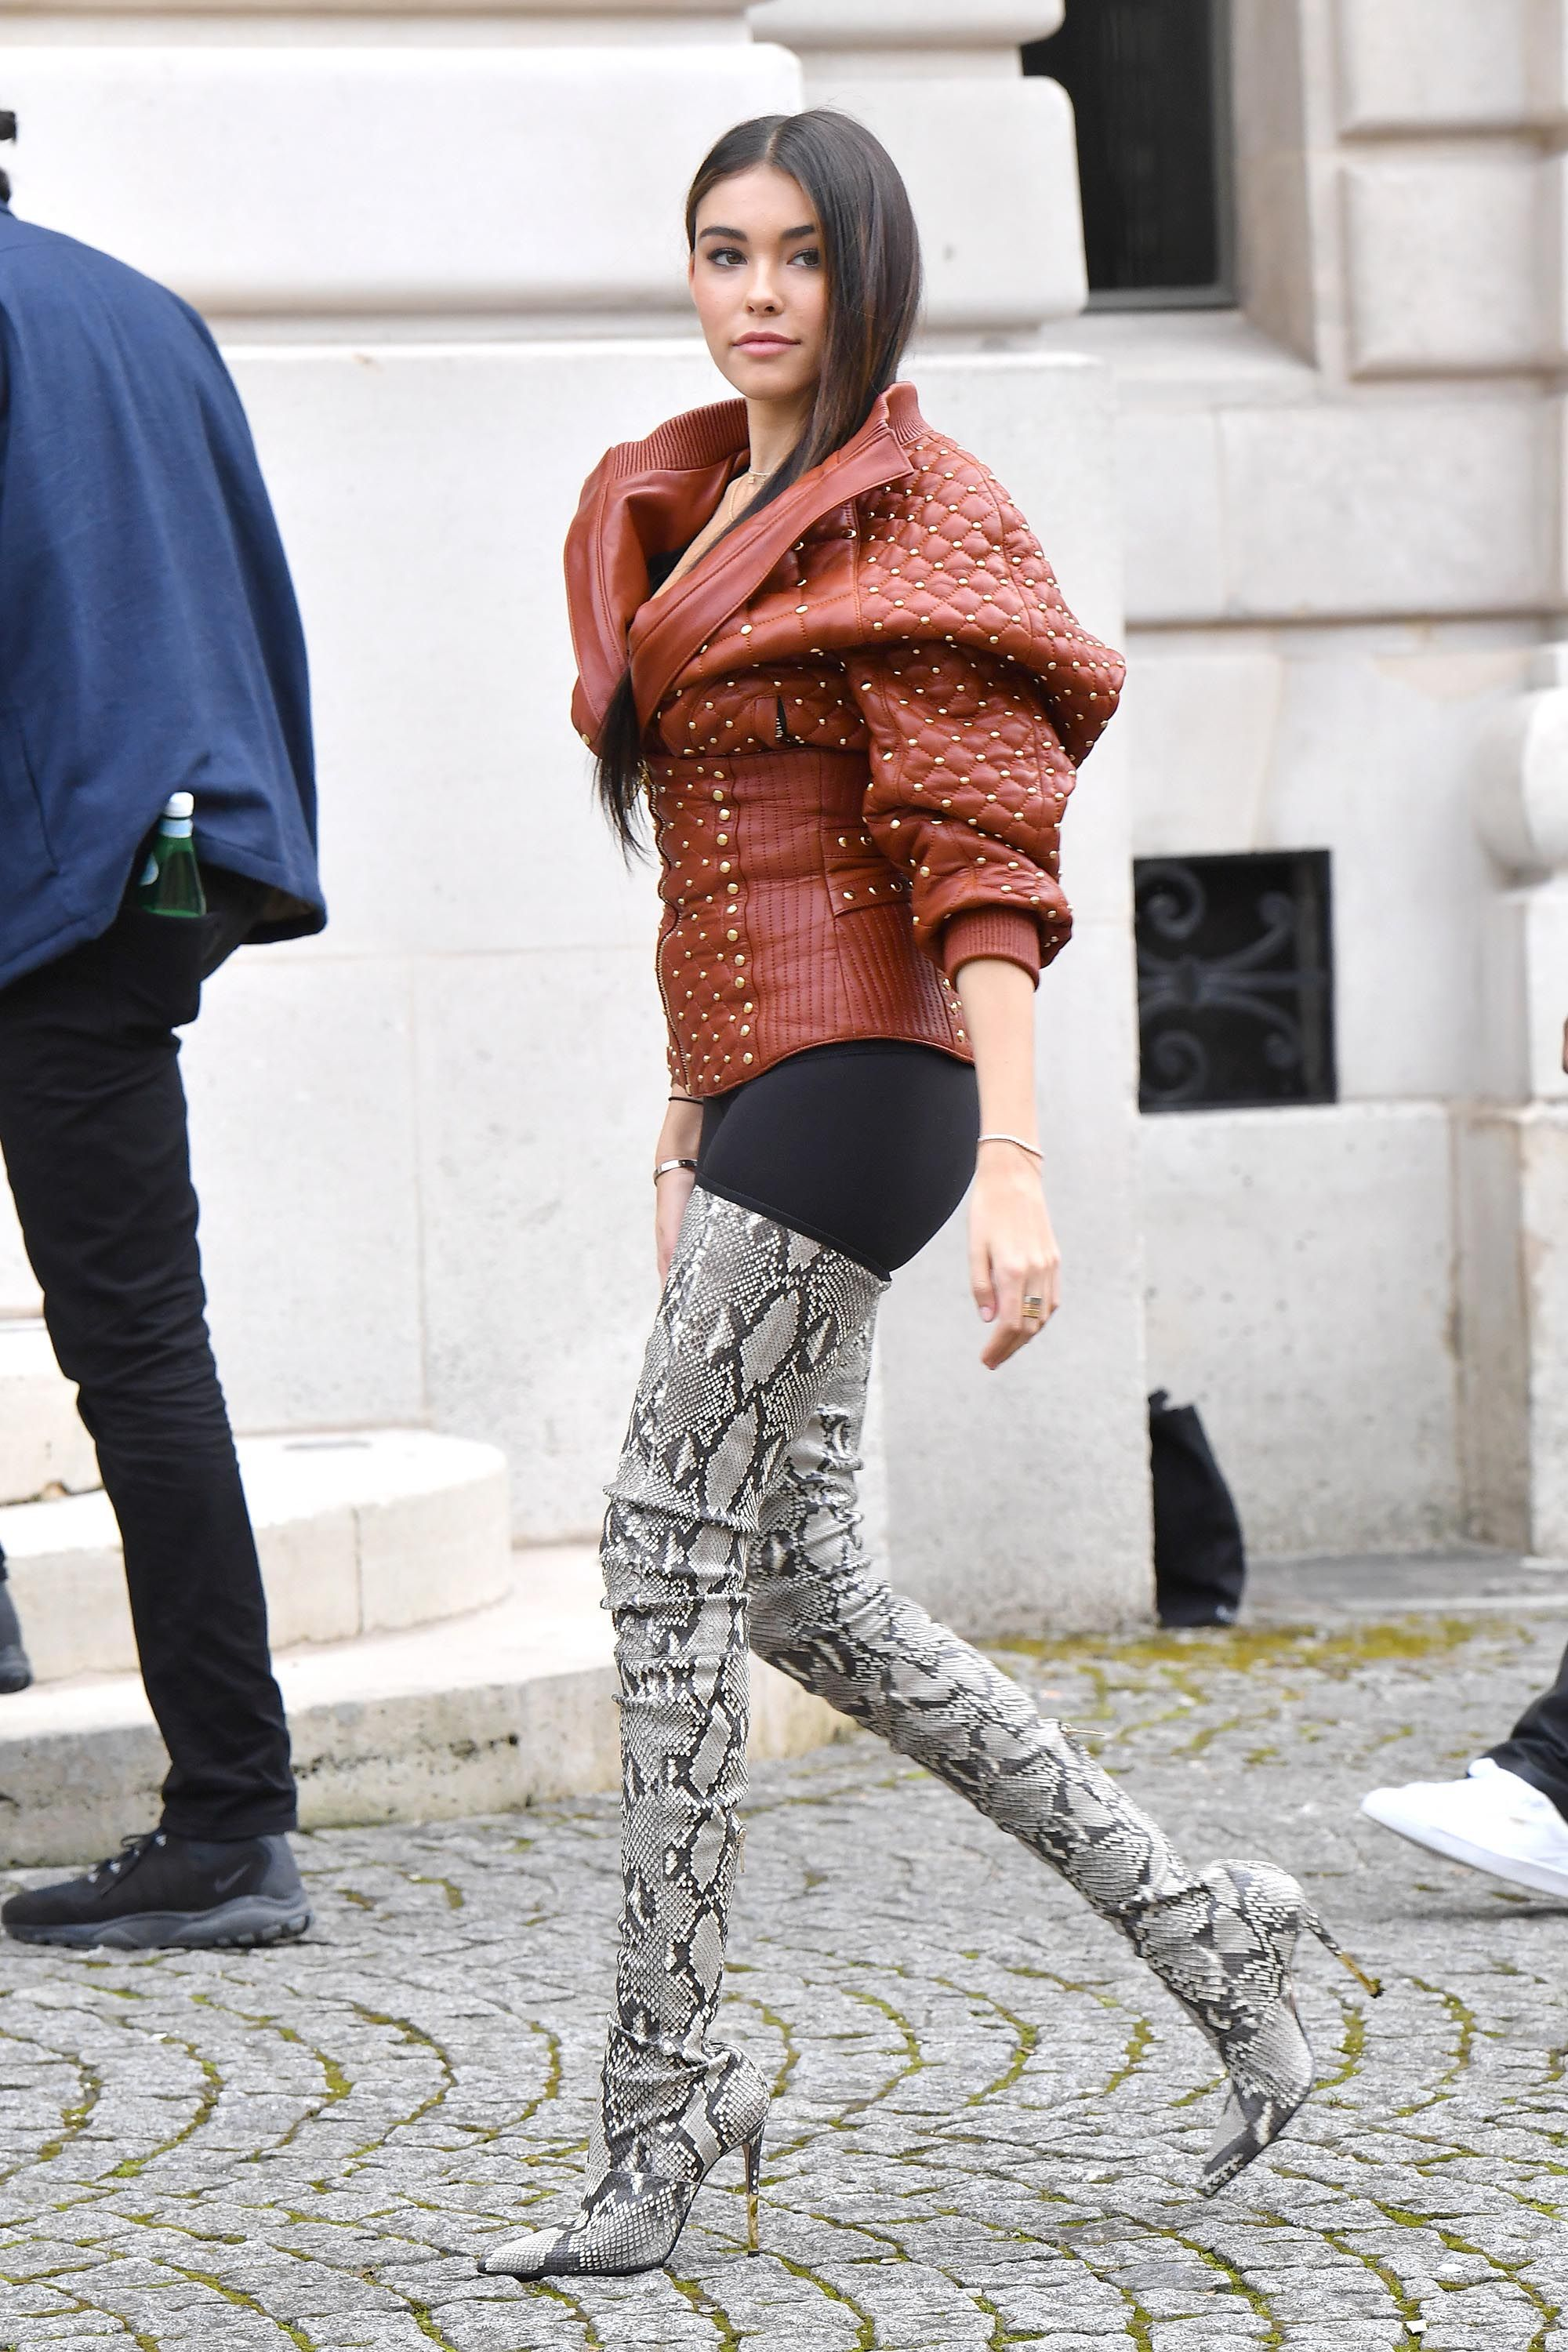 271a8363bac1 Madison Beer attends the Balmain show Crotch Boots